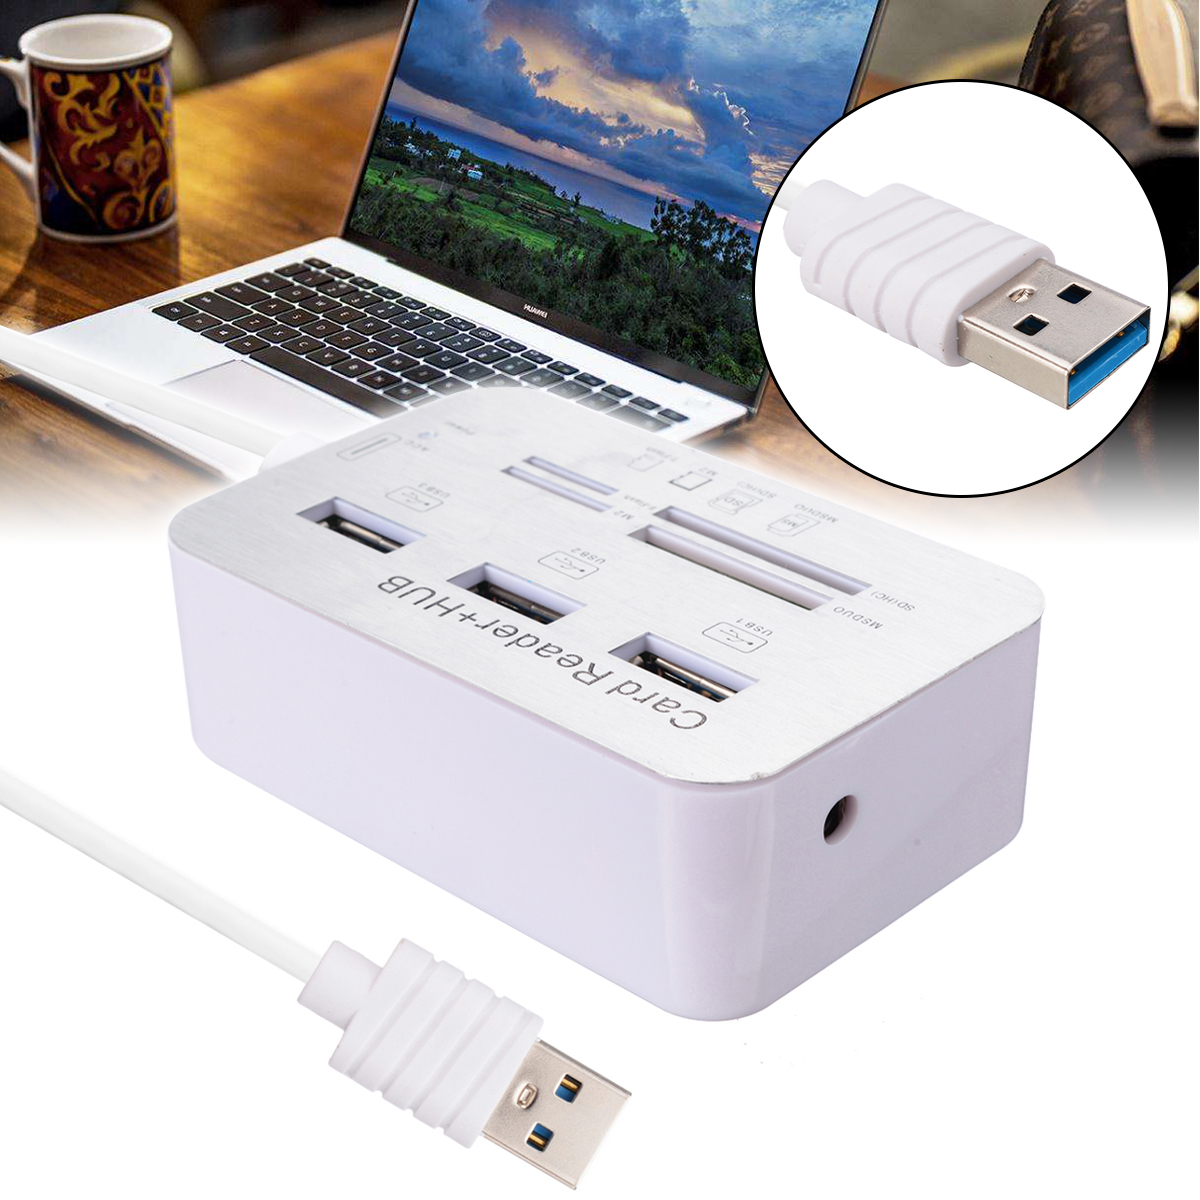 New Aluminum Portable USB 3.0 3 Port Hub With MS SD M2 TF Multi-In-1 Card Reader For All In One PC Computer Accessories